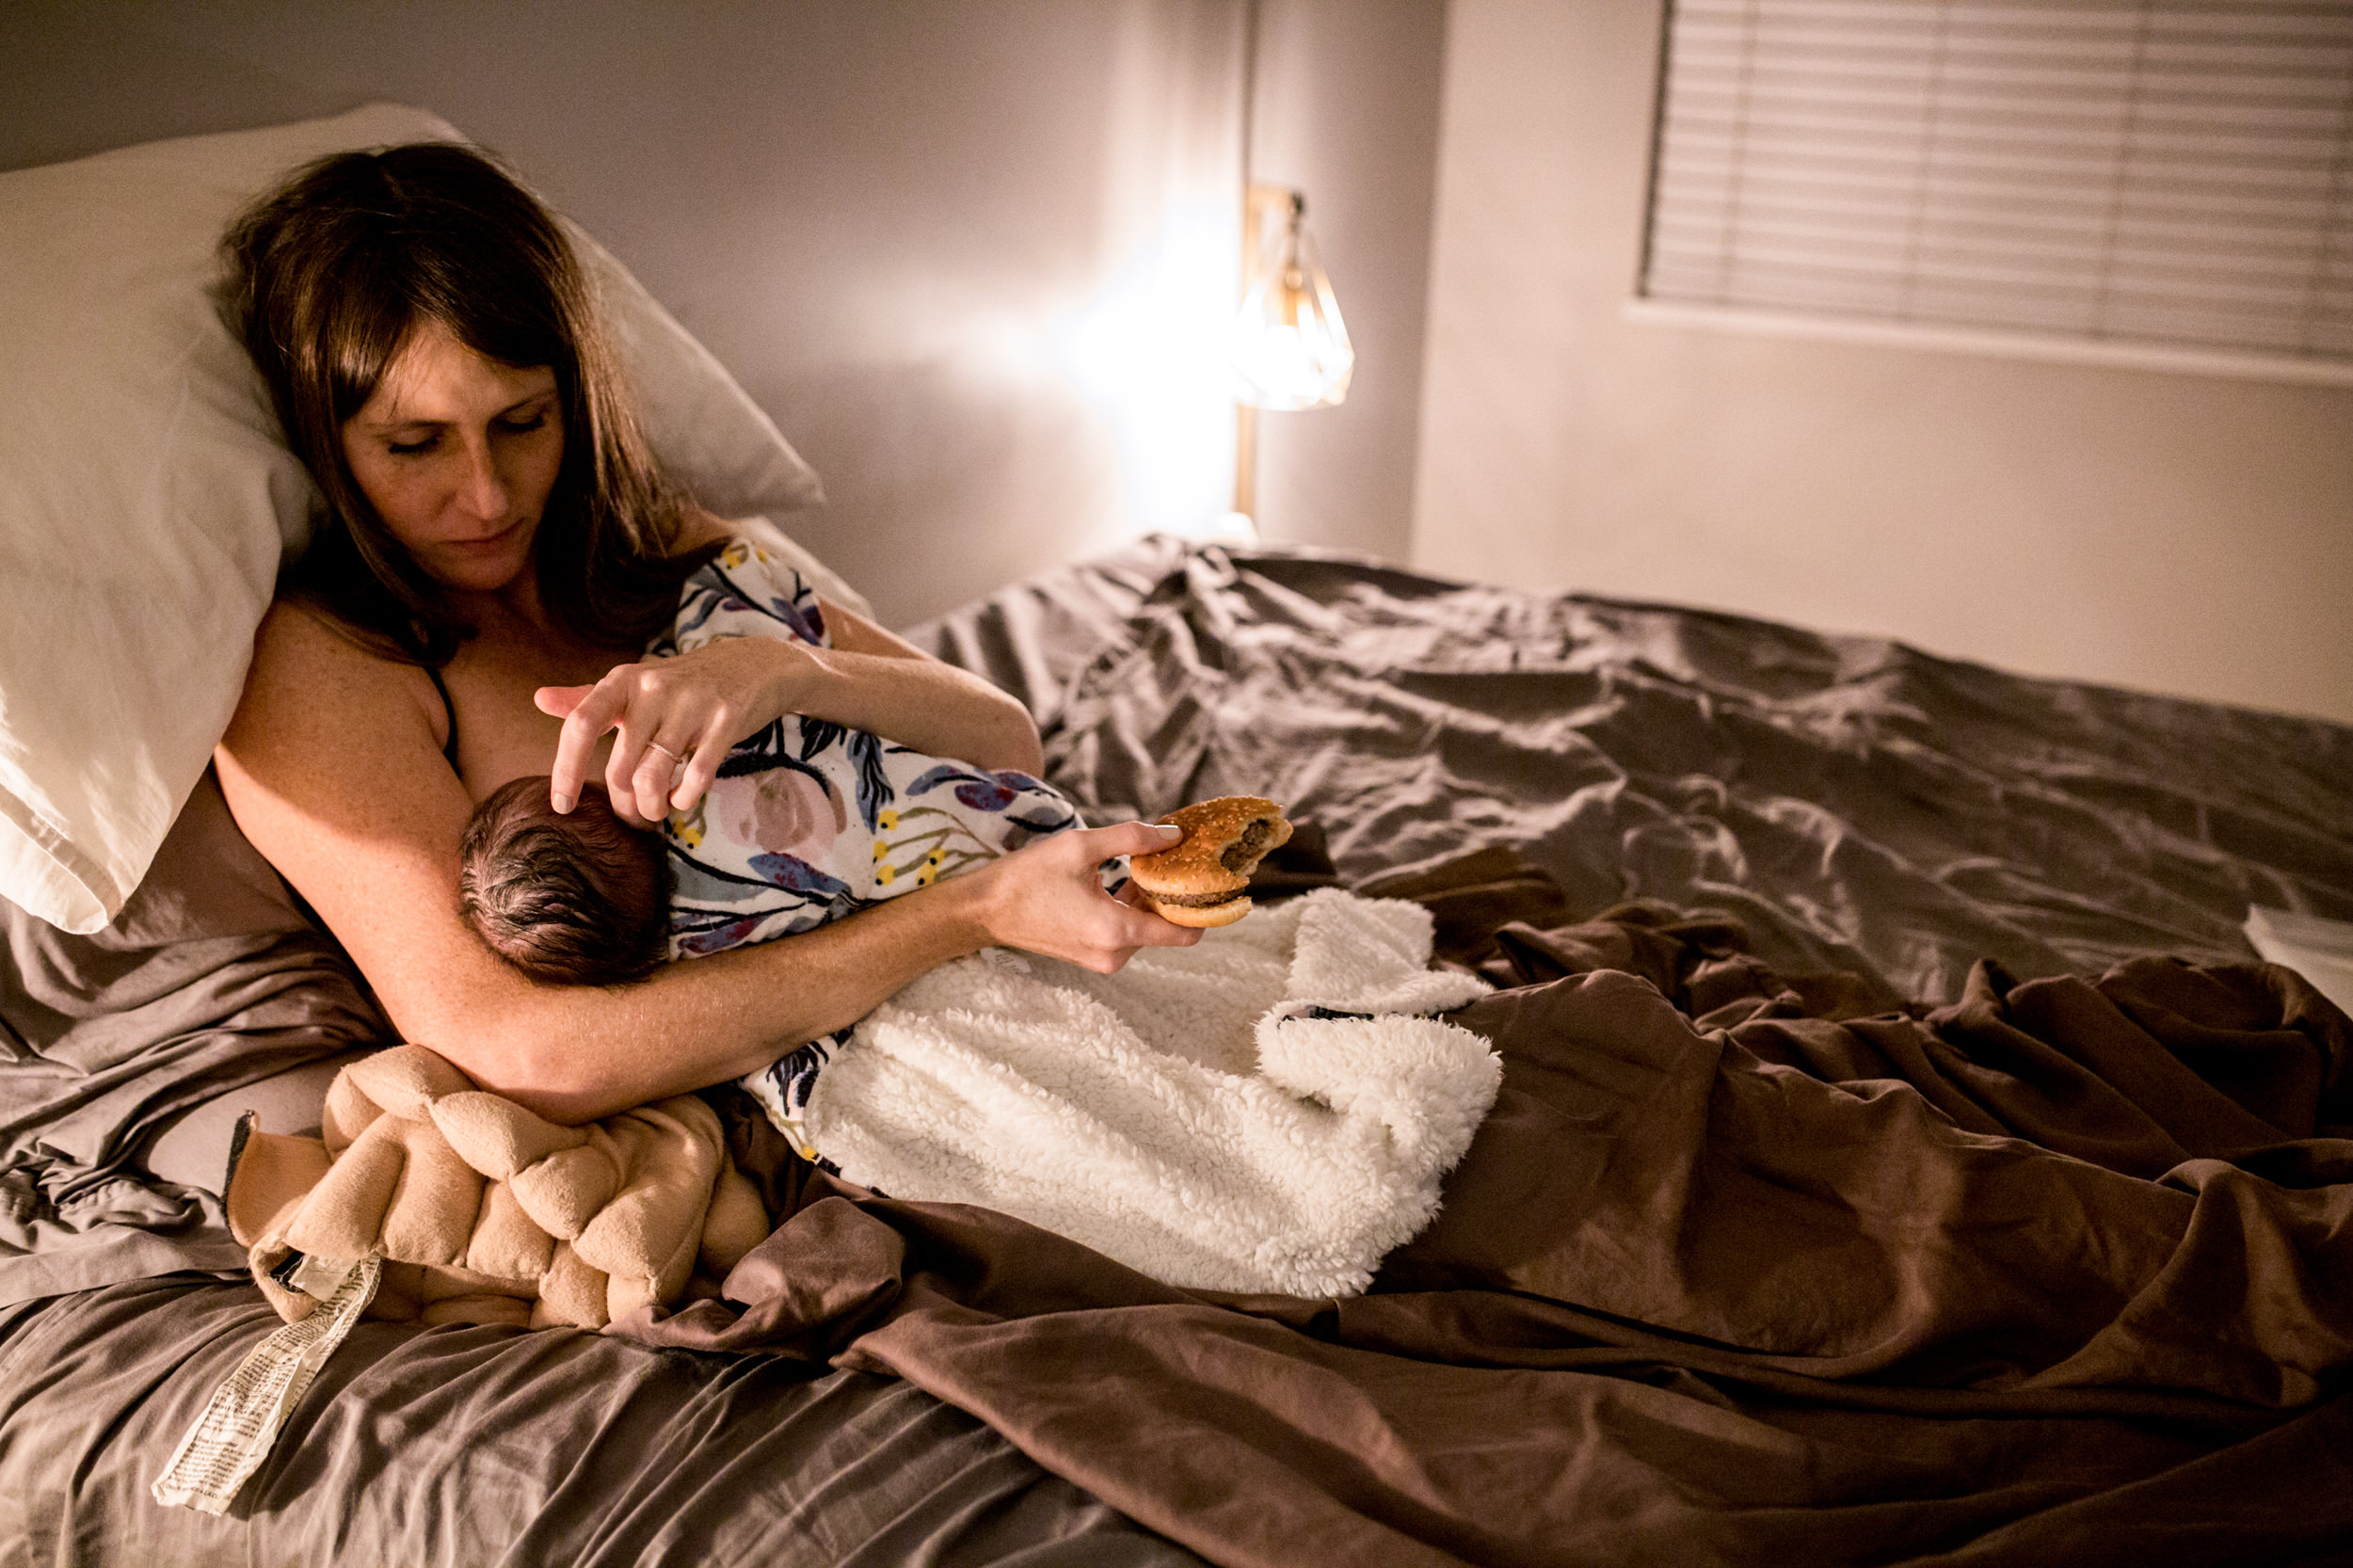 mom eating burger after home birth while nursing